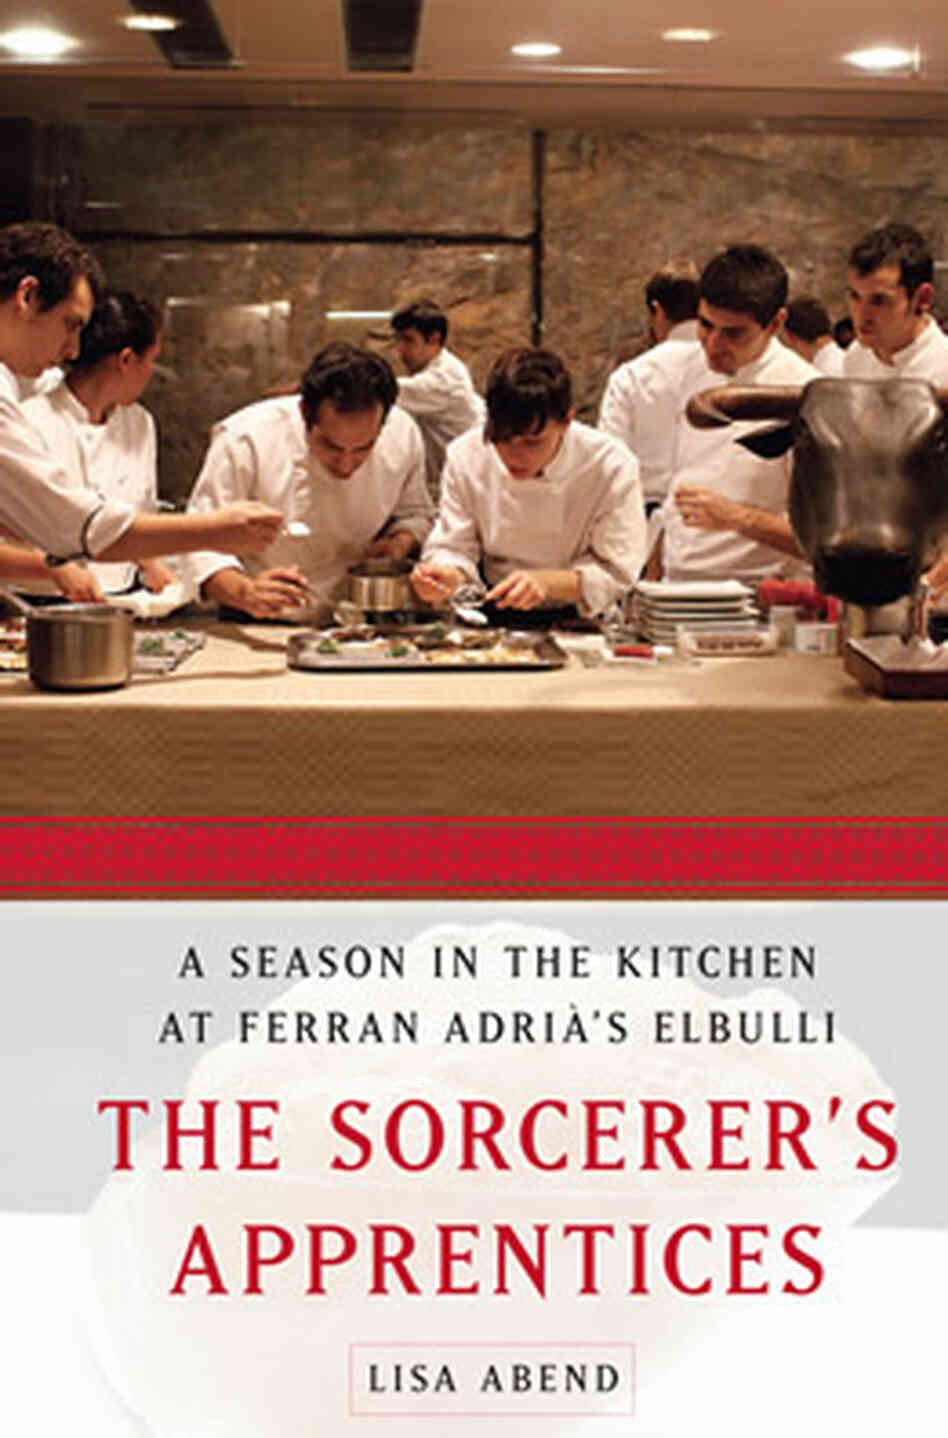 The Sorcerer's Apprentices: A Season in the Kitchen at Ferran Adrià's elBulli, by Lisa Abend